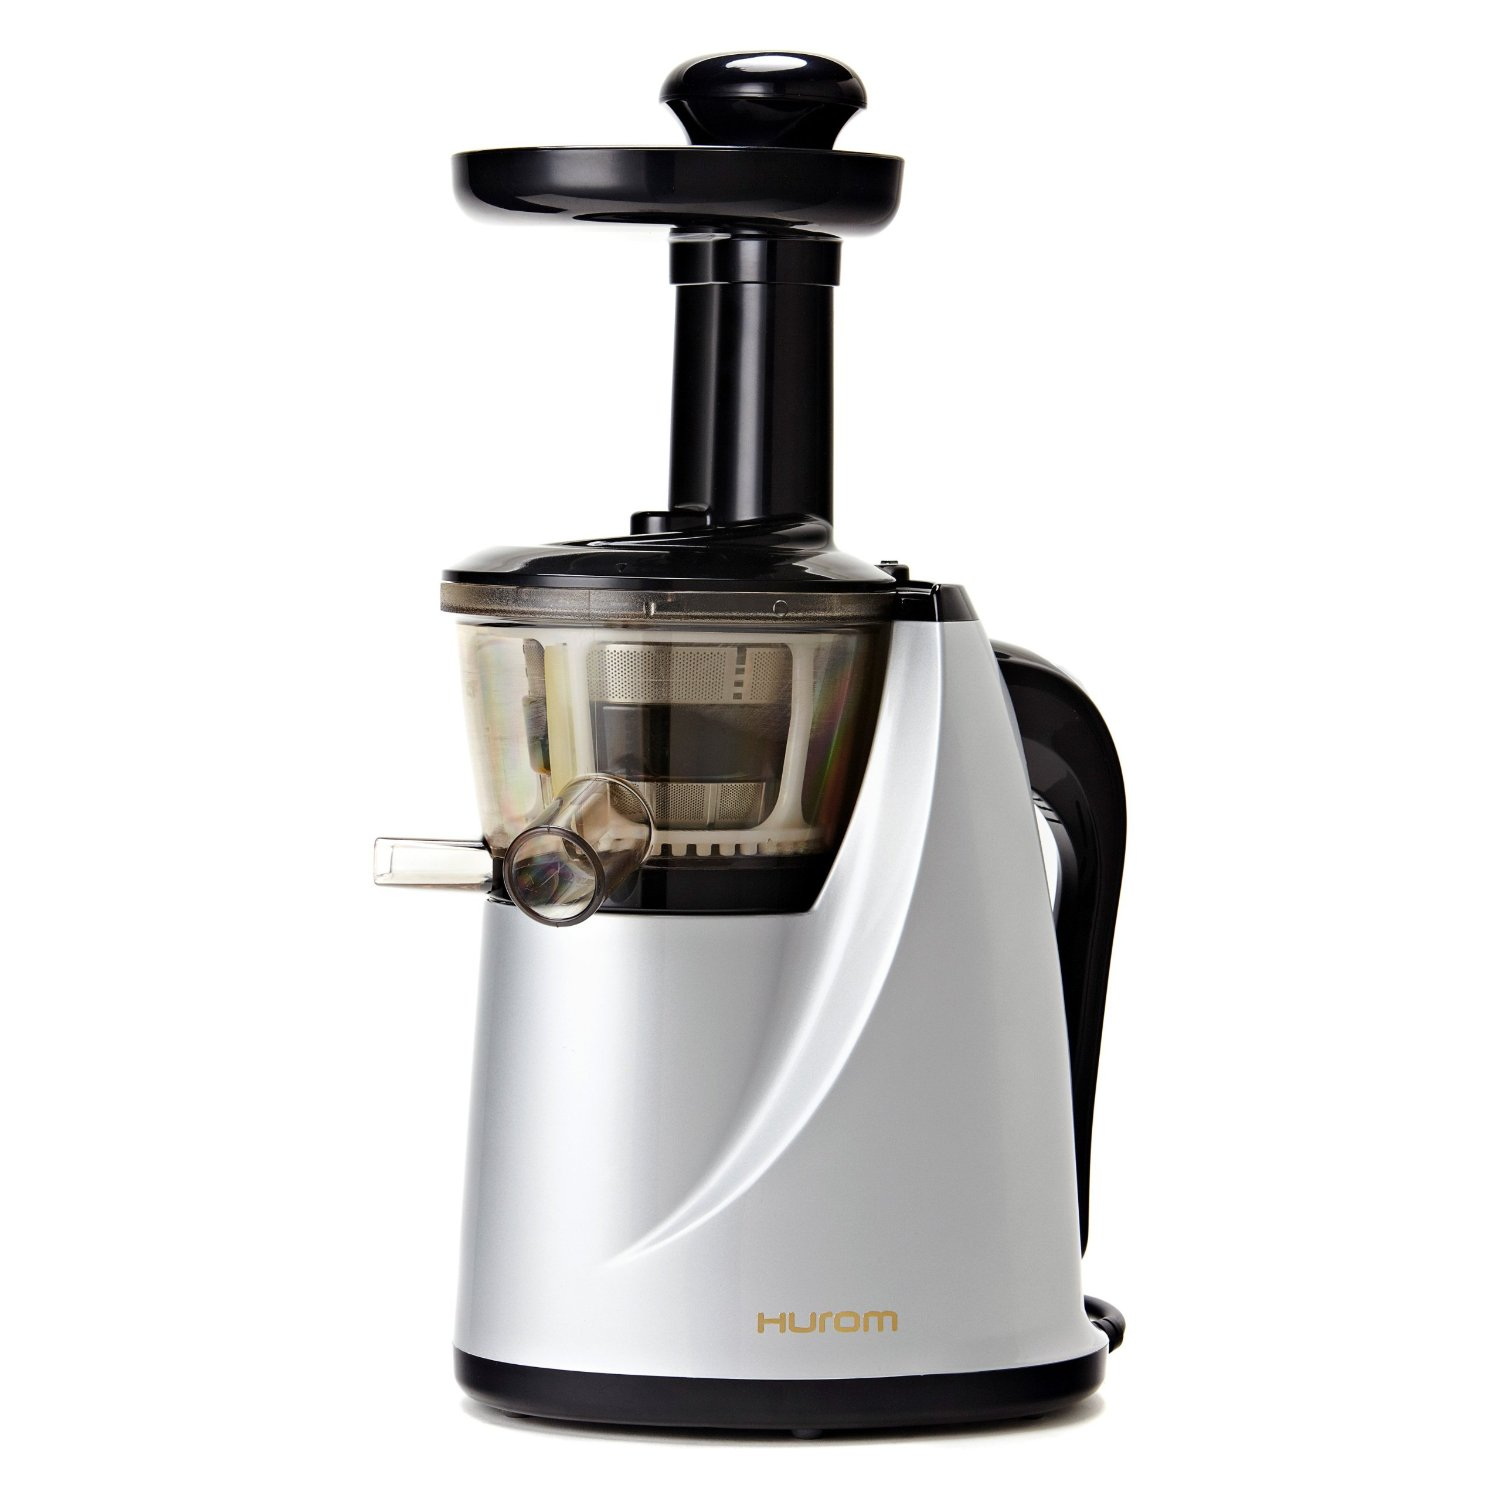 Hurom Slow Juicer Germany : Hurom HU-100 Masticating Slow Juicer Review - Best Cold Press Juicers